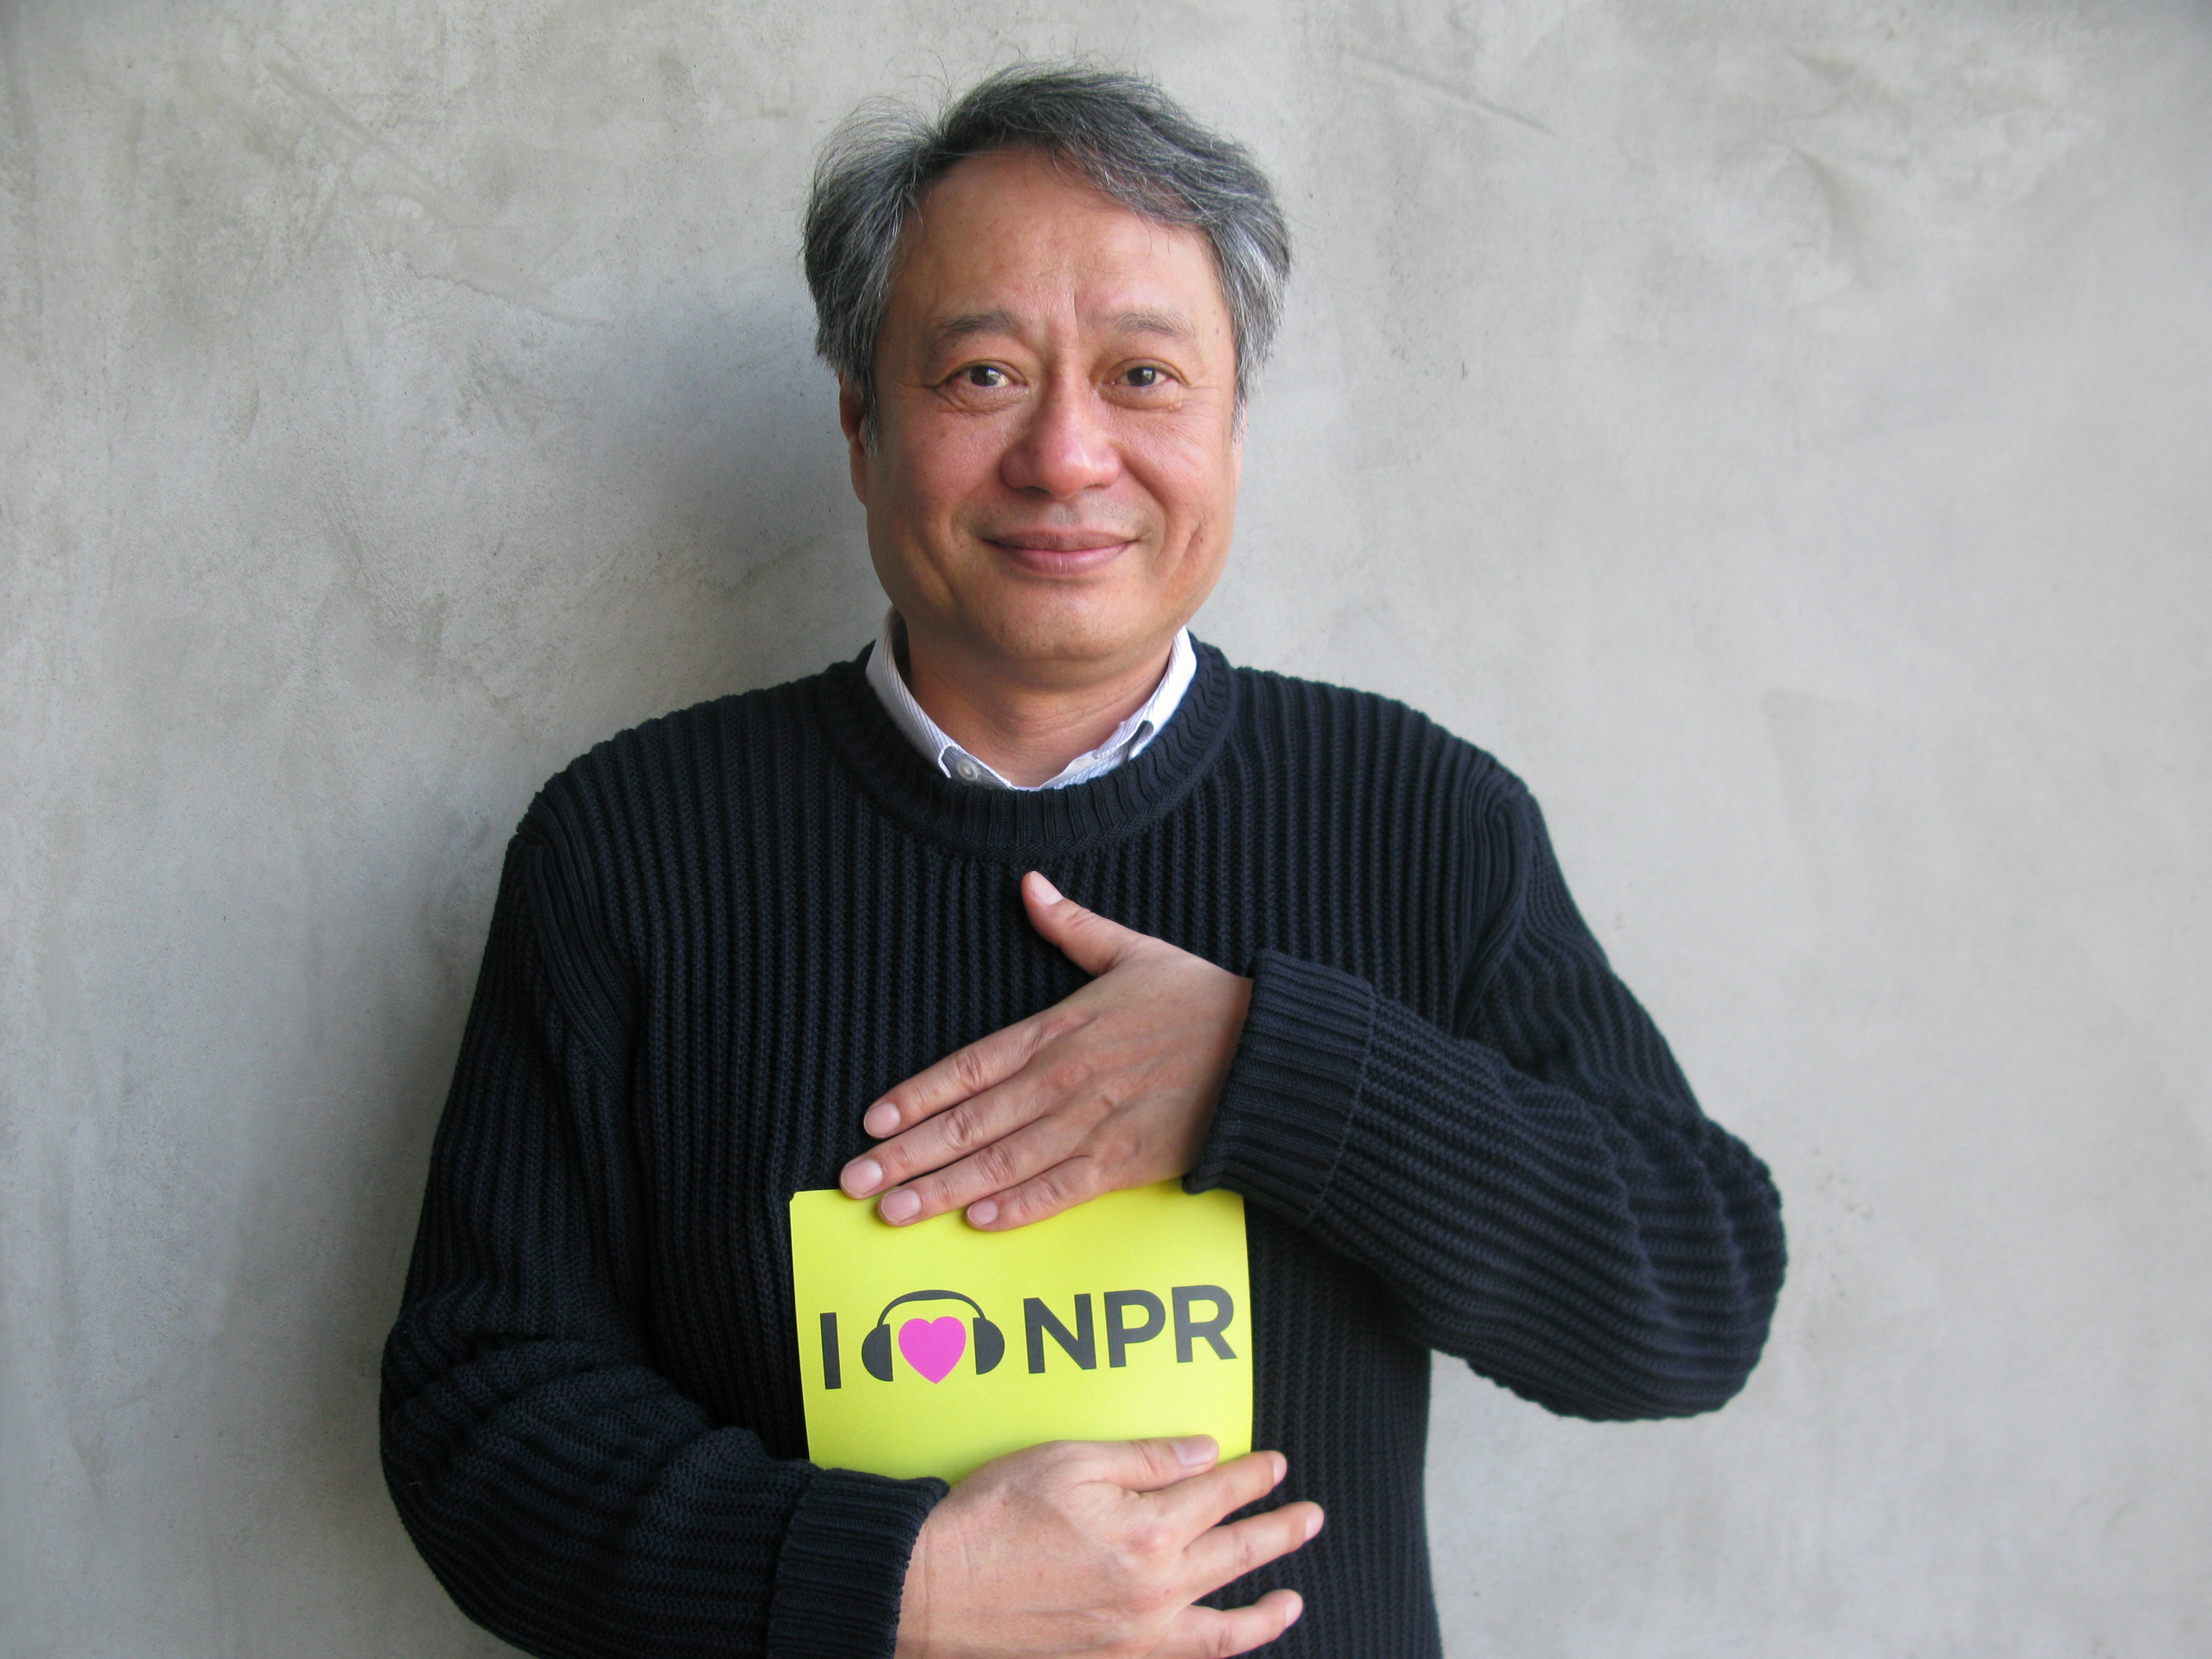 Life of Pi Director Ang Lee earned high honors from the Academy this year with a Best Director nomination, but we'll also give him props for sharing some real love for NPR. (http://n.pr/SUYV6V)